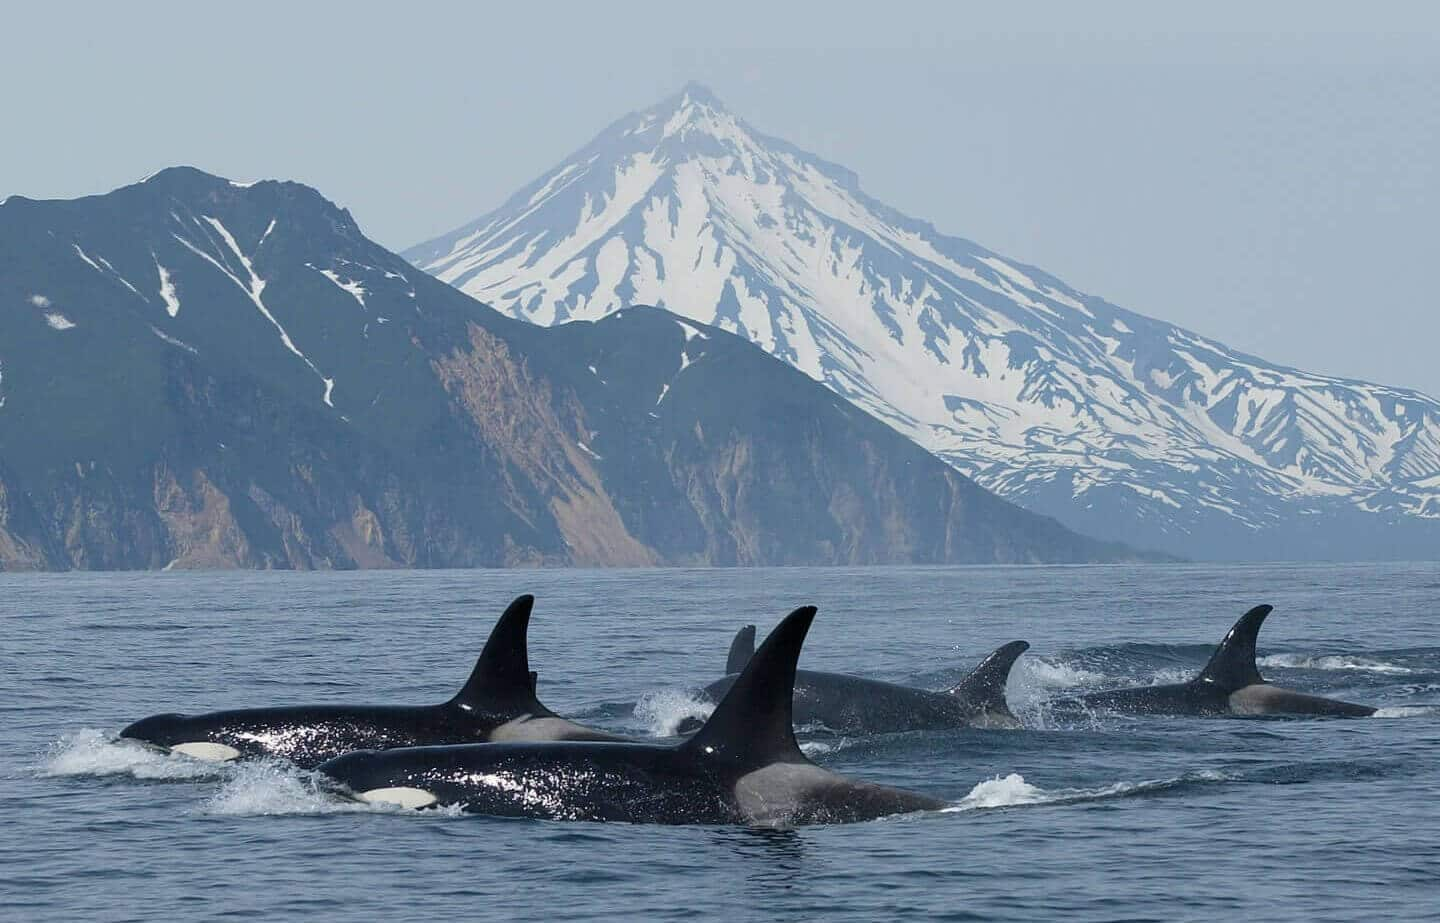 Group of orcas off Kamchatka, Russia